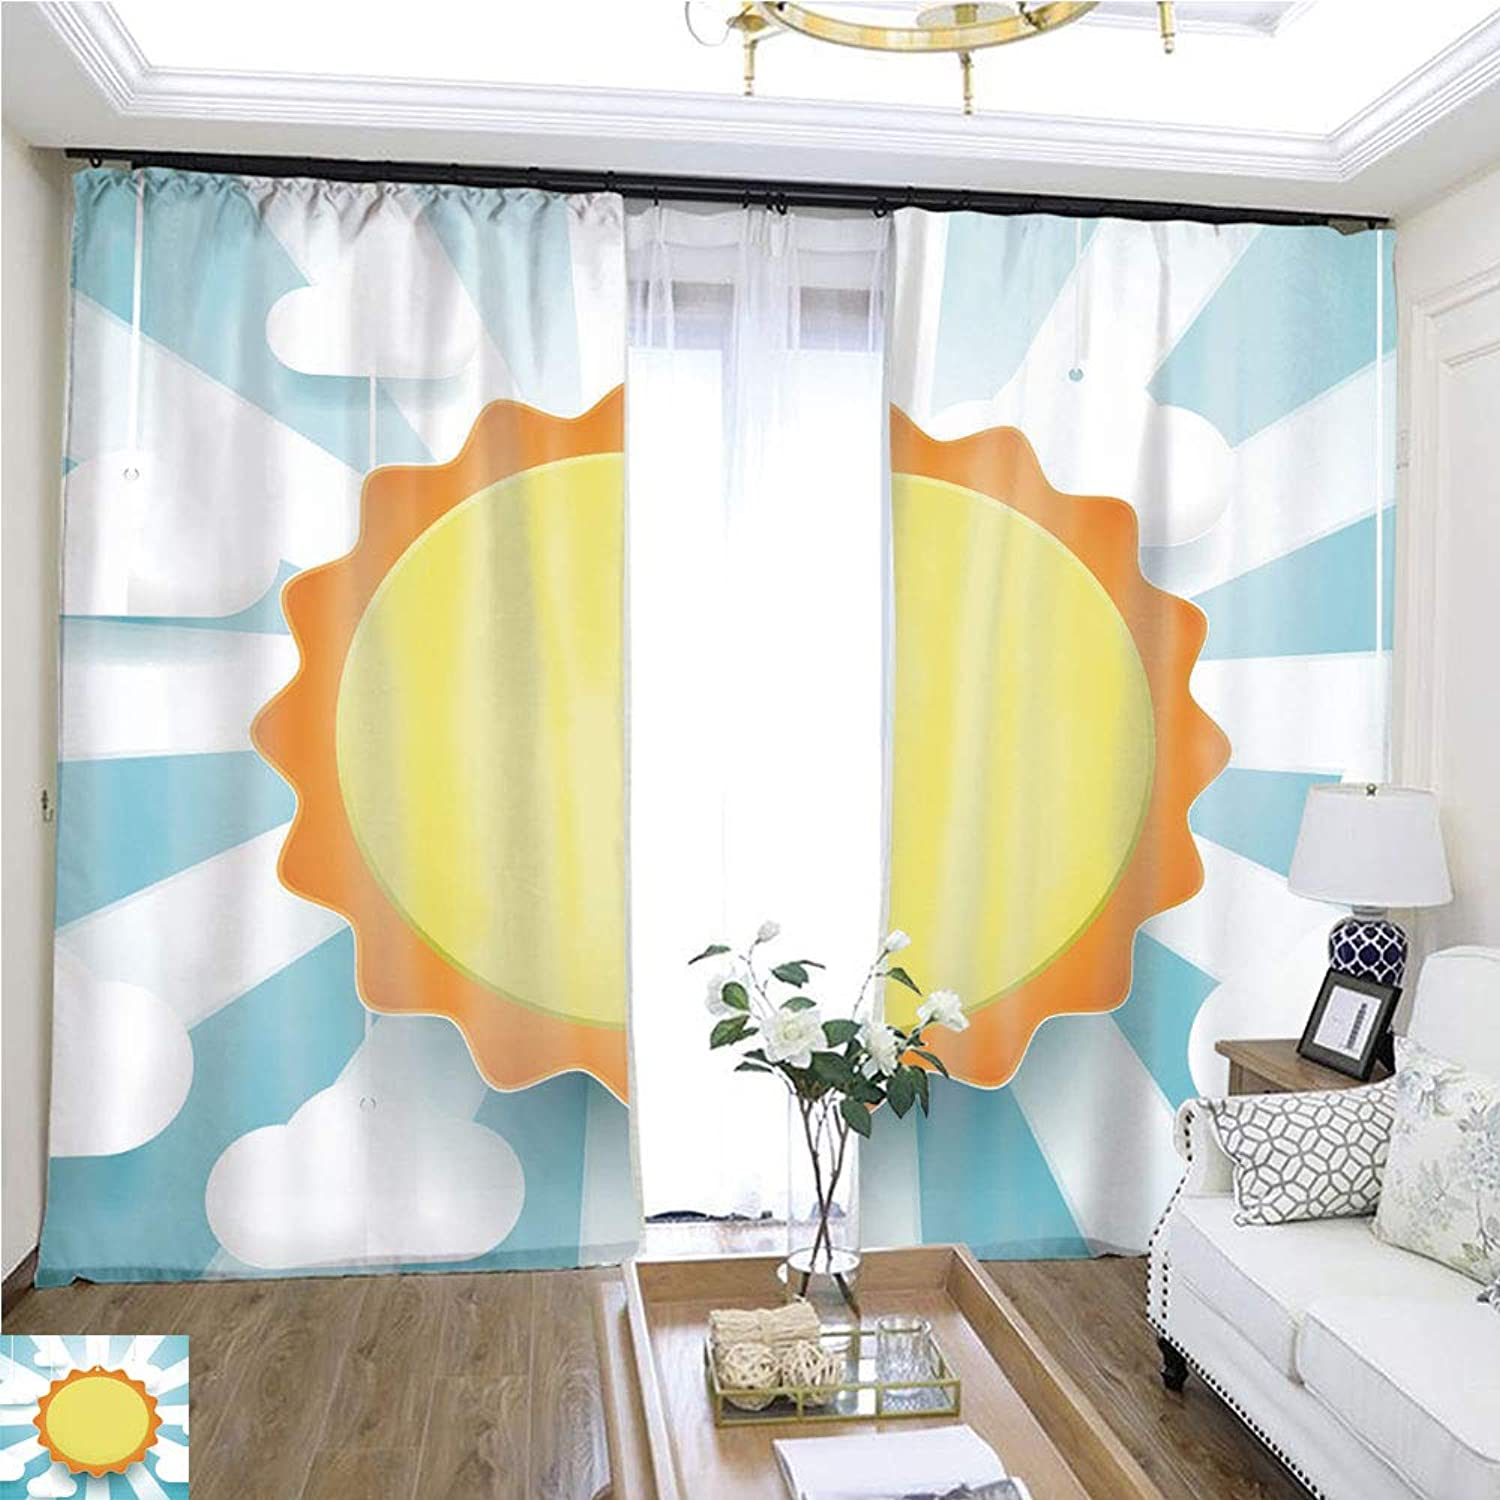 Air Port Screen Cute Sun and Clouds Background Paper Art and Craft Style W96 x L300 Block The Sun Highprecision Curtains for bedrooms Living Rooms Kitchens etc.